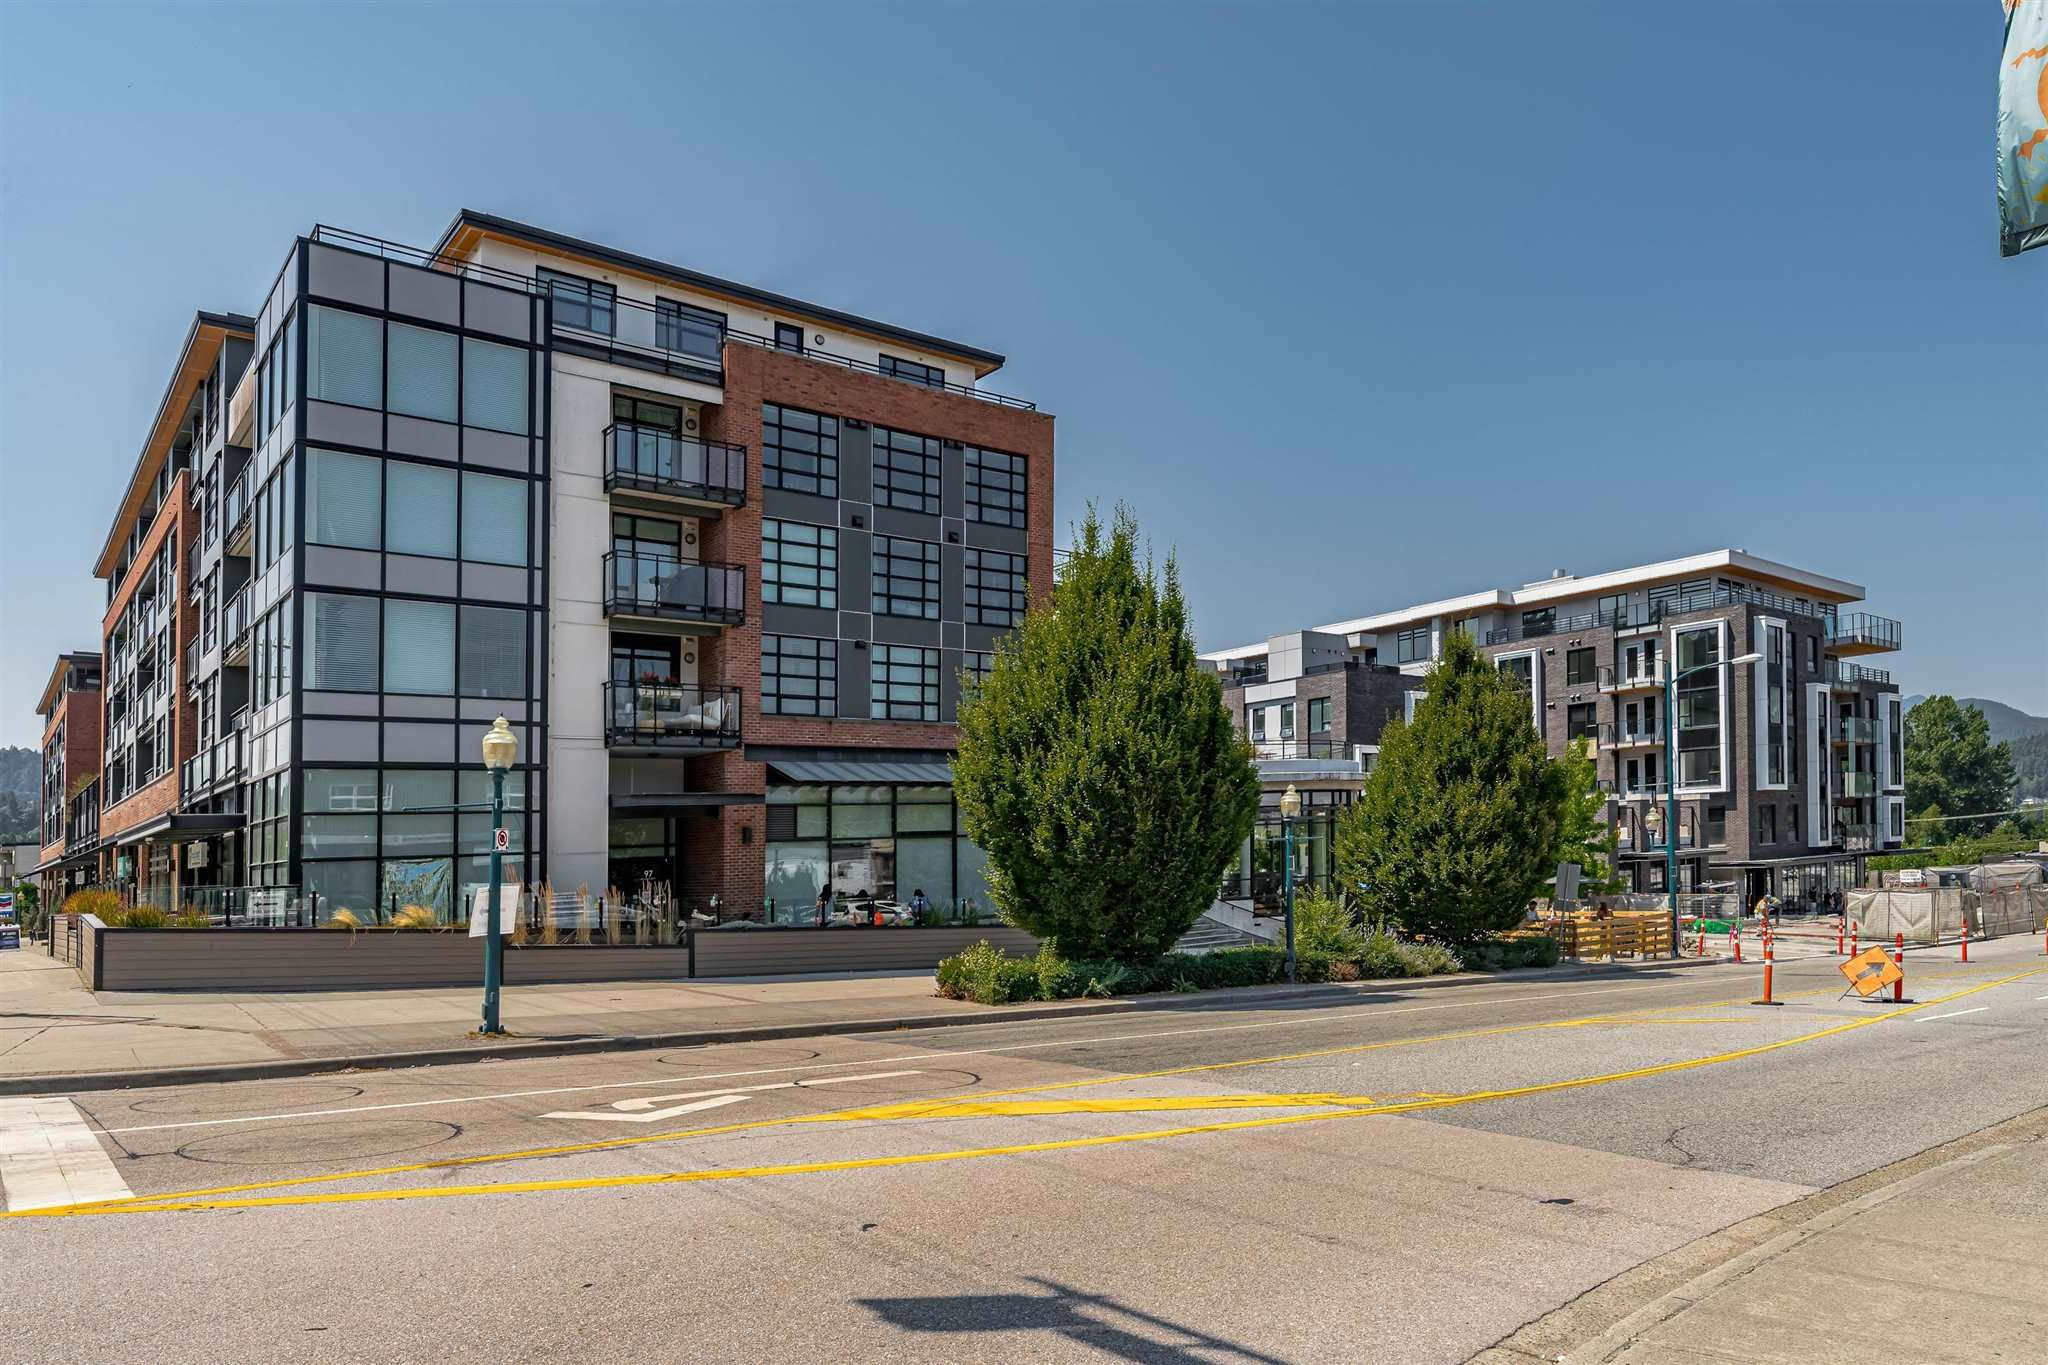 """Main Photo: 409 95 MOODY Street in Port Moody: Port Moody Centre Condo for sale in """"The Station by Aragon"""" : MLS®# R2602041"""